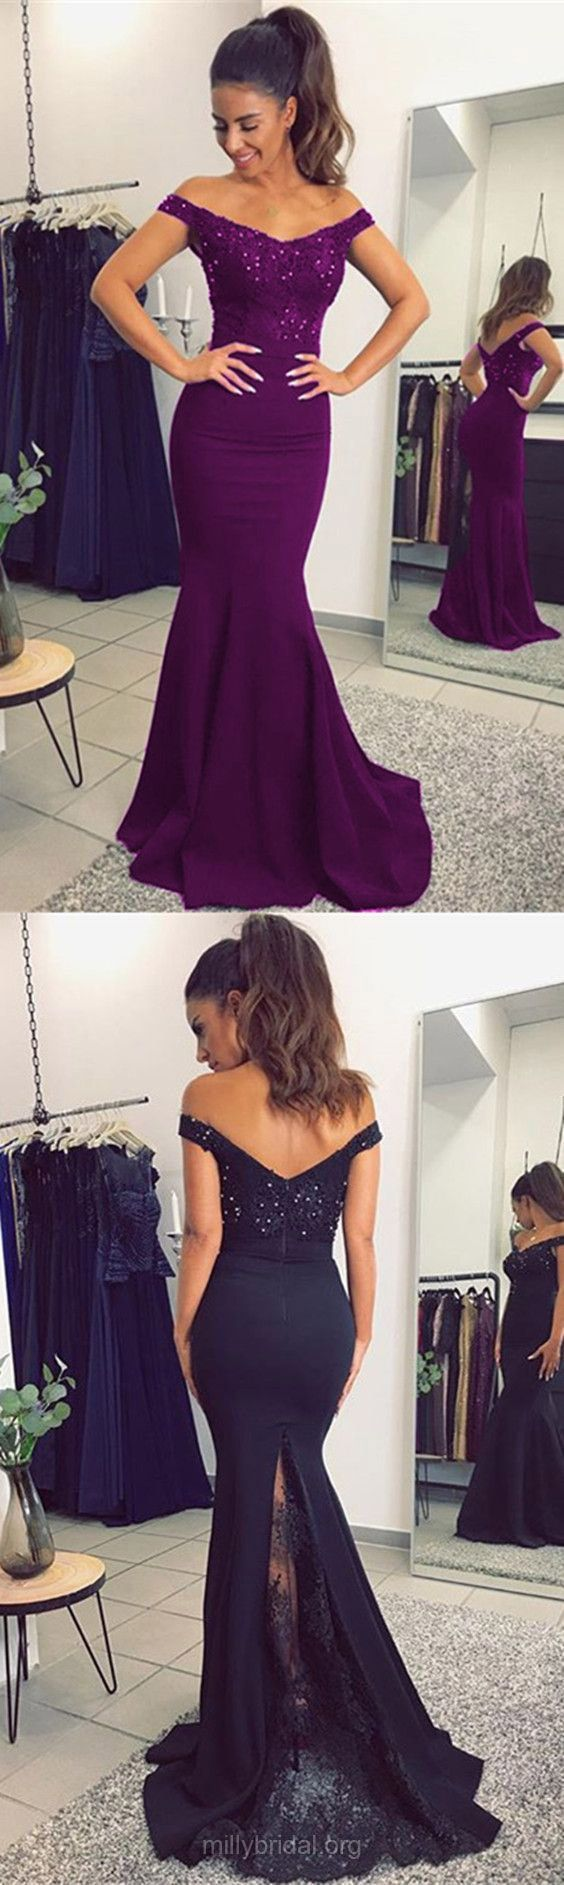 Lace Prom Dresses, Long Prom Dresses, Trumpet/Mermaid Prom Dresses Off-the-shoulder, Tulle Silk-like Satin Prom Dresses Appliques #promdresses #longpromdresses